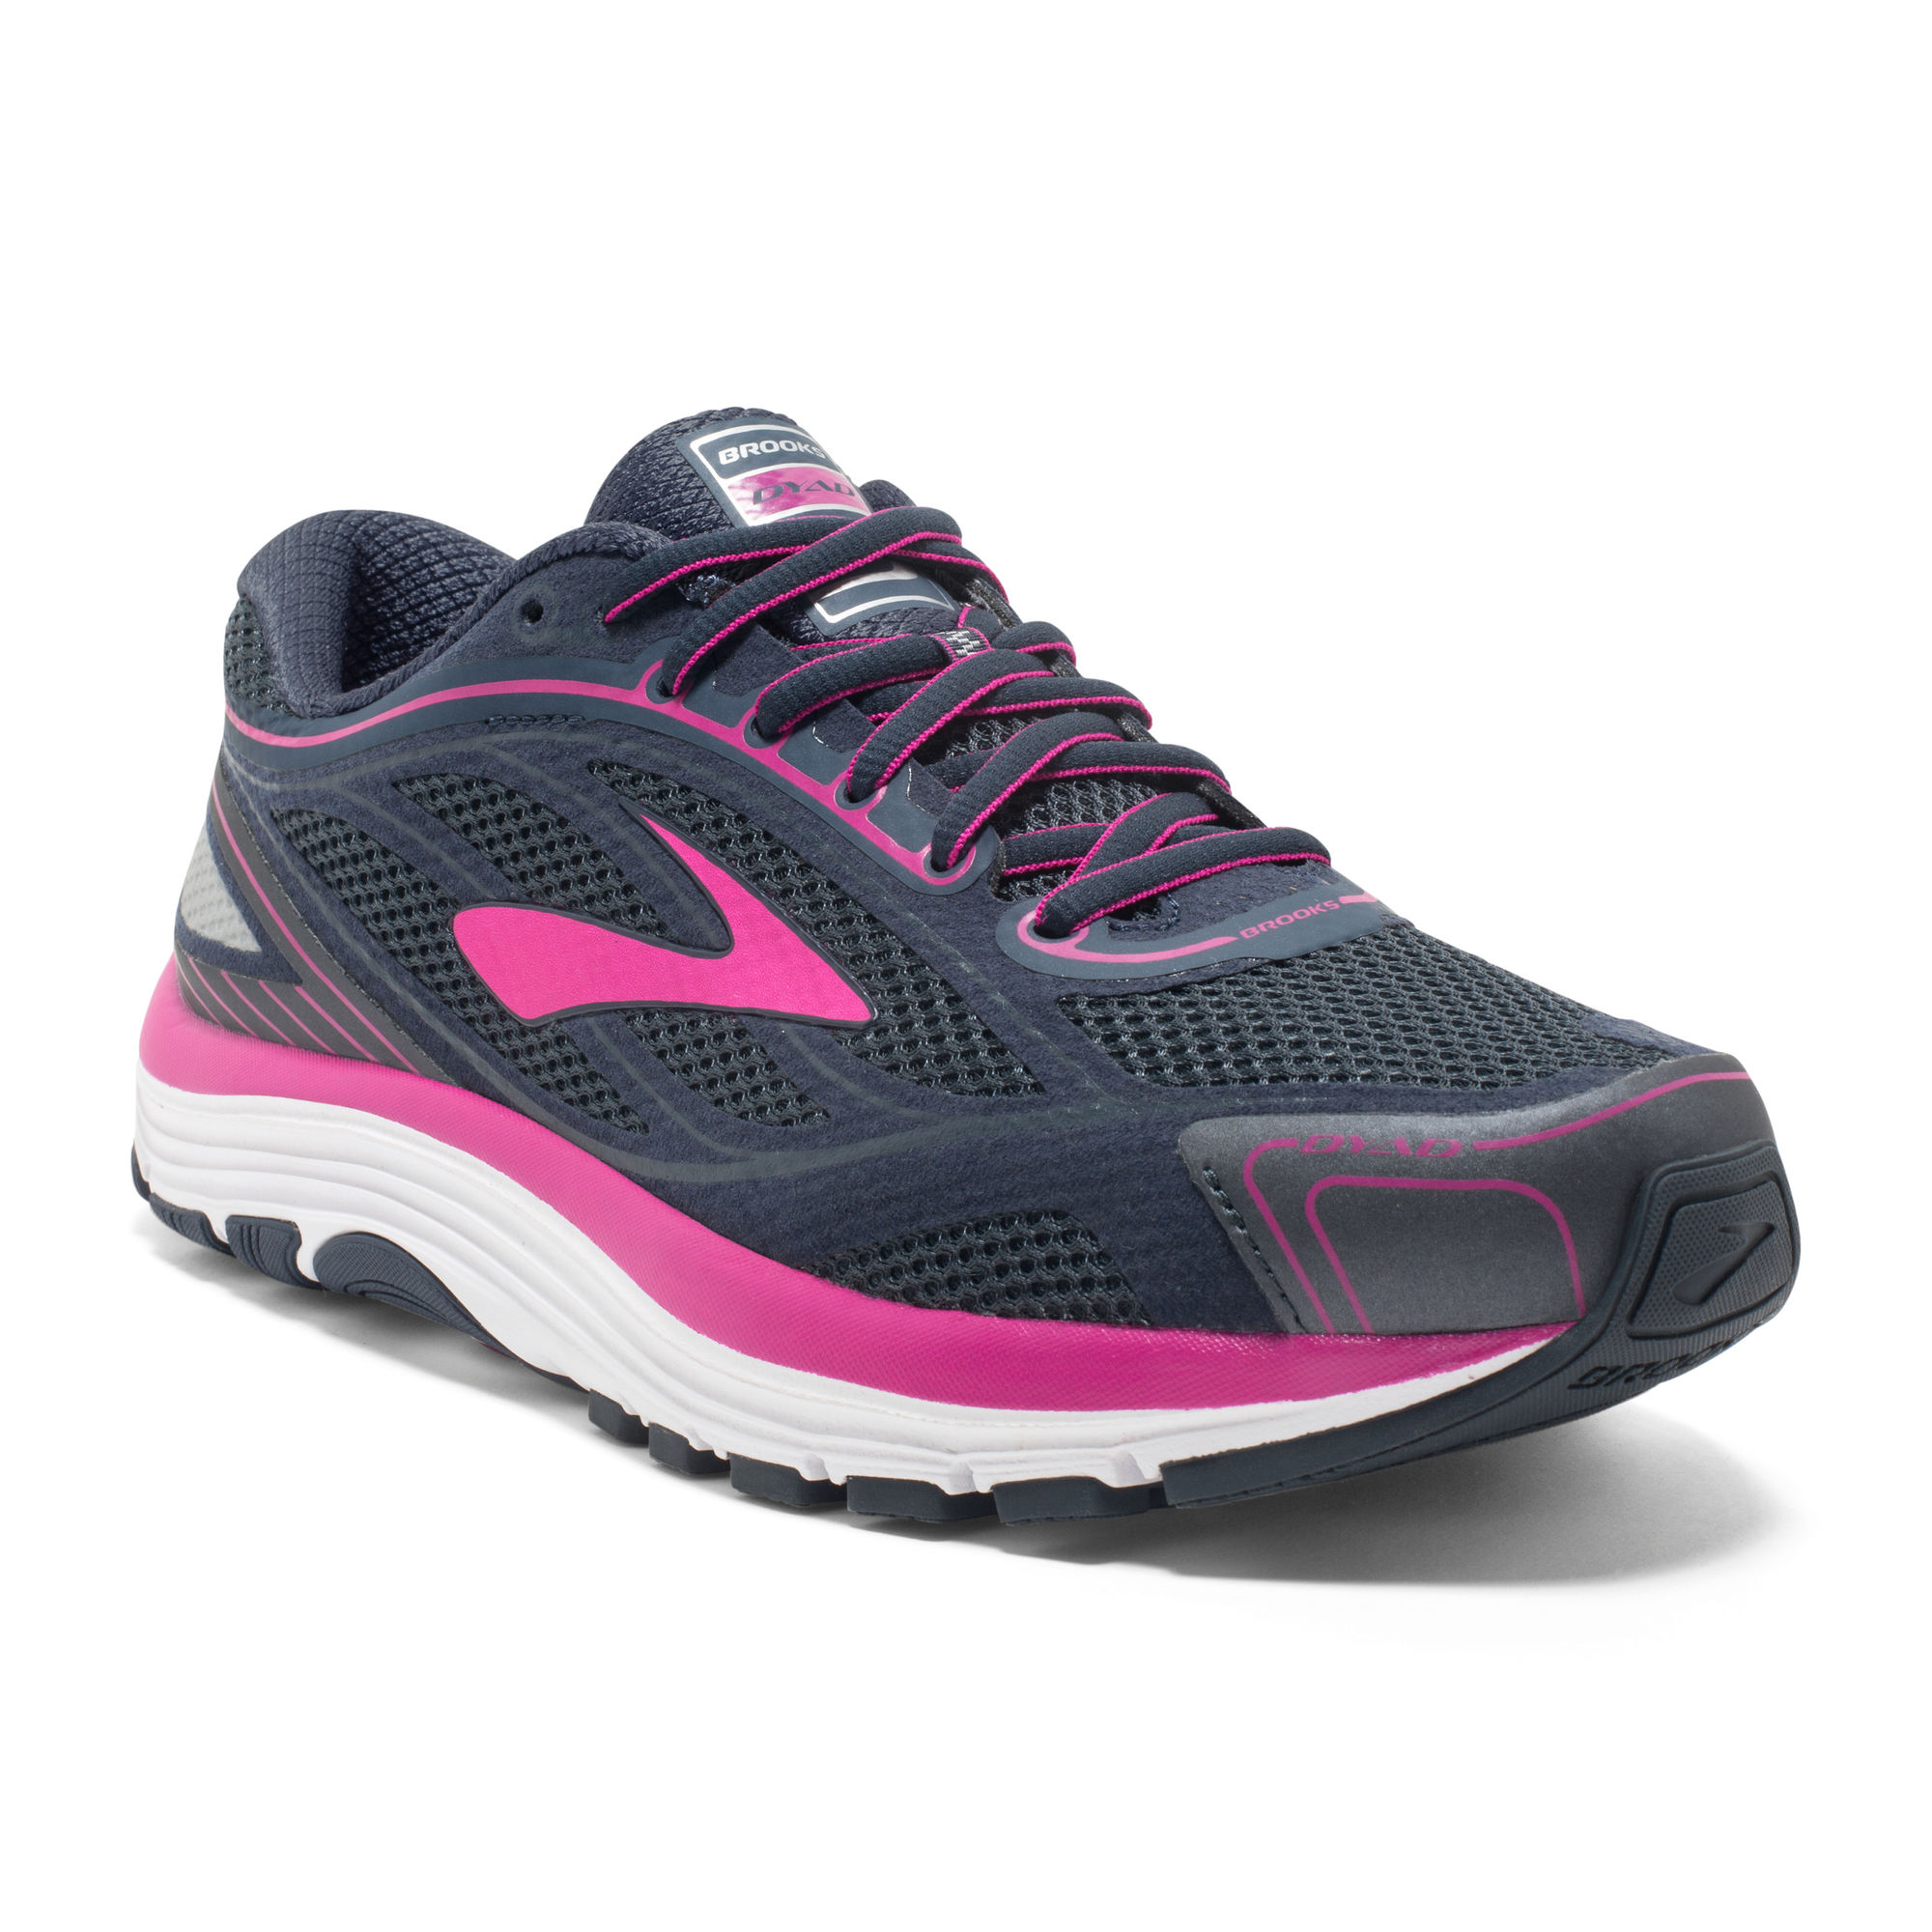 Brooks Lady Dyad 9 in Grau Pink